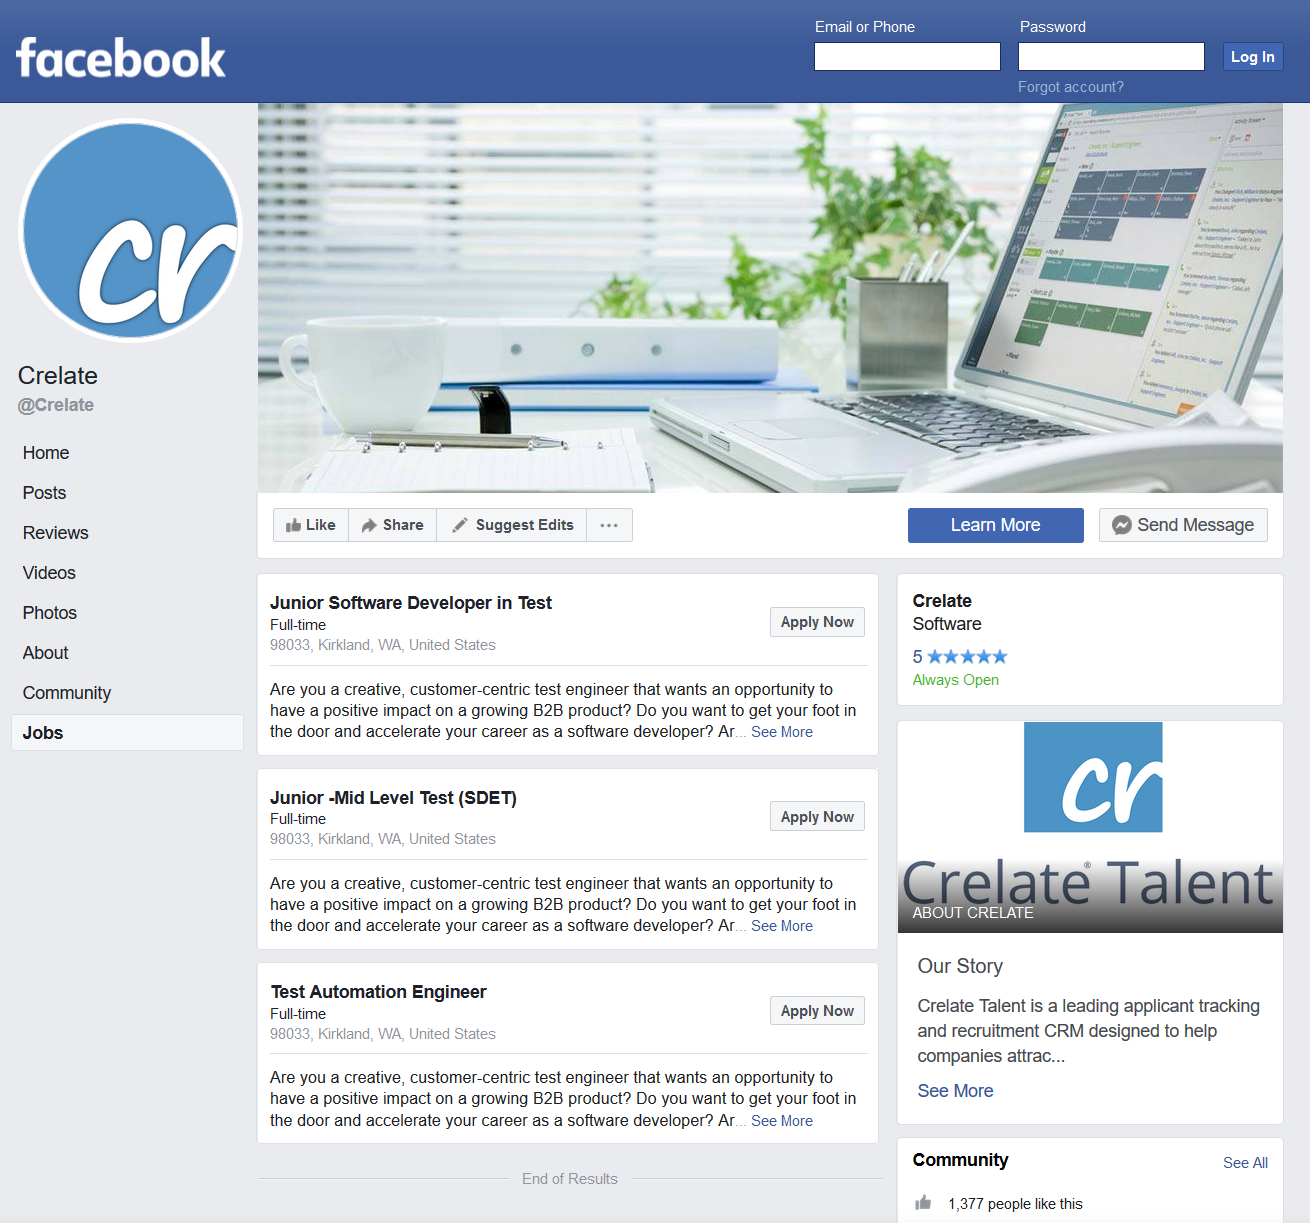 Facebook Crelate page